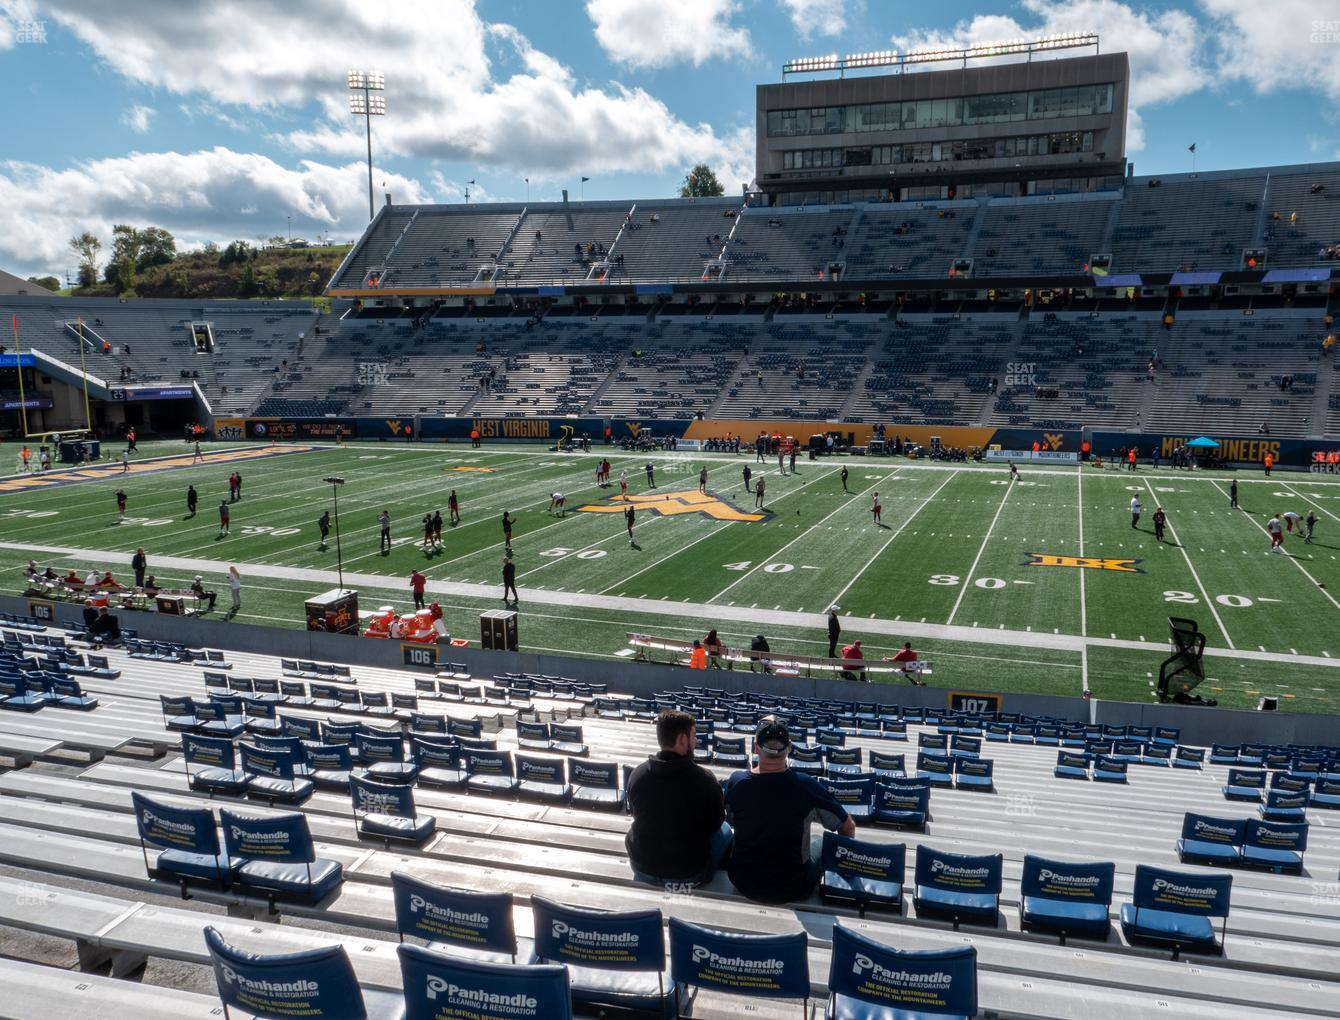 West Virginia Mountaineers Football at Mountaineer Field at Milan Puskar Stadium Section 107 View